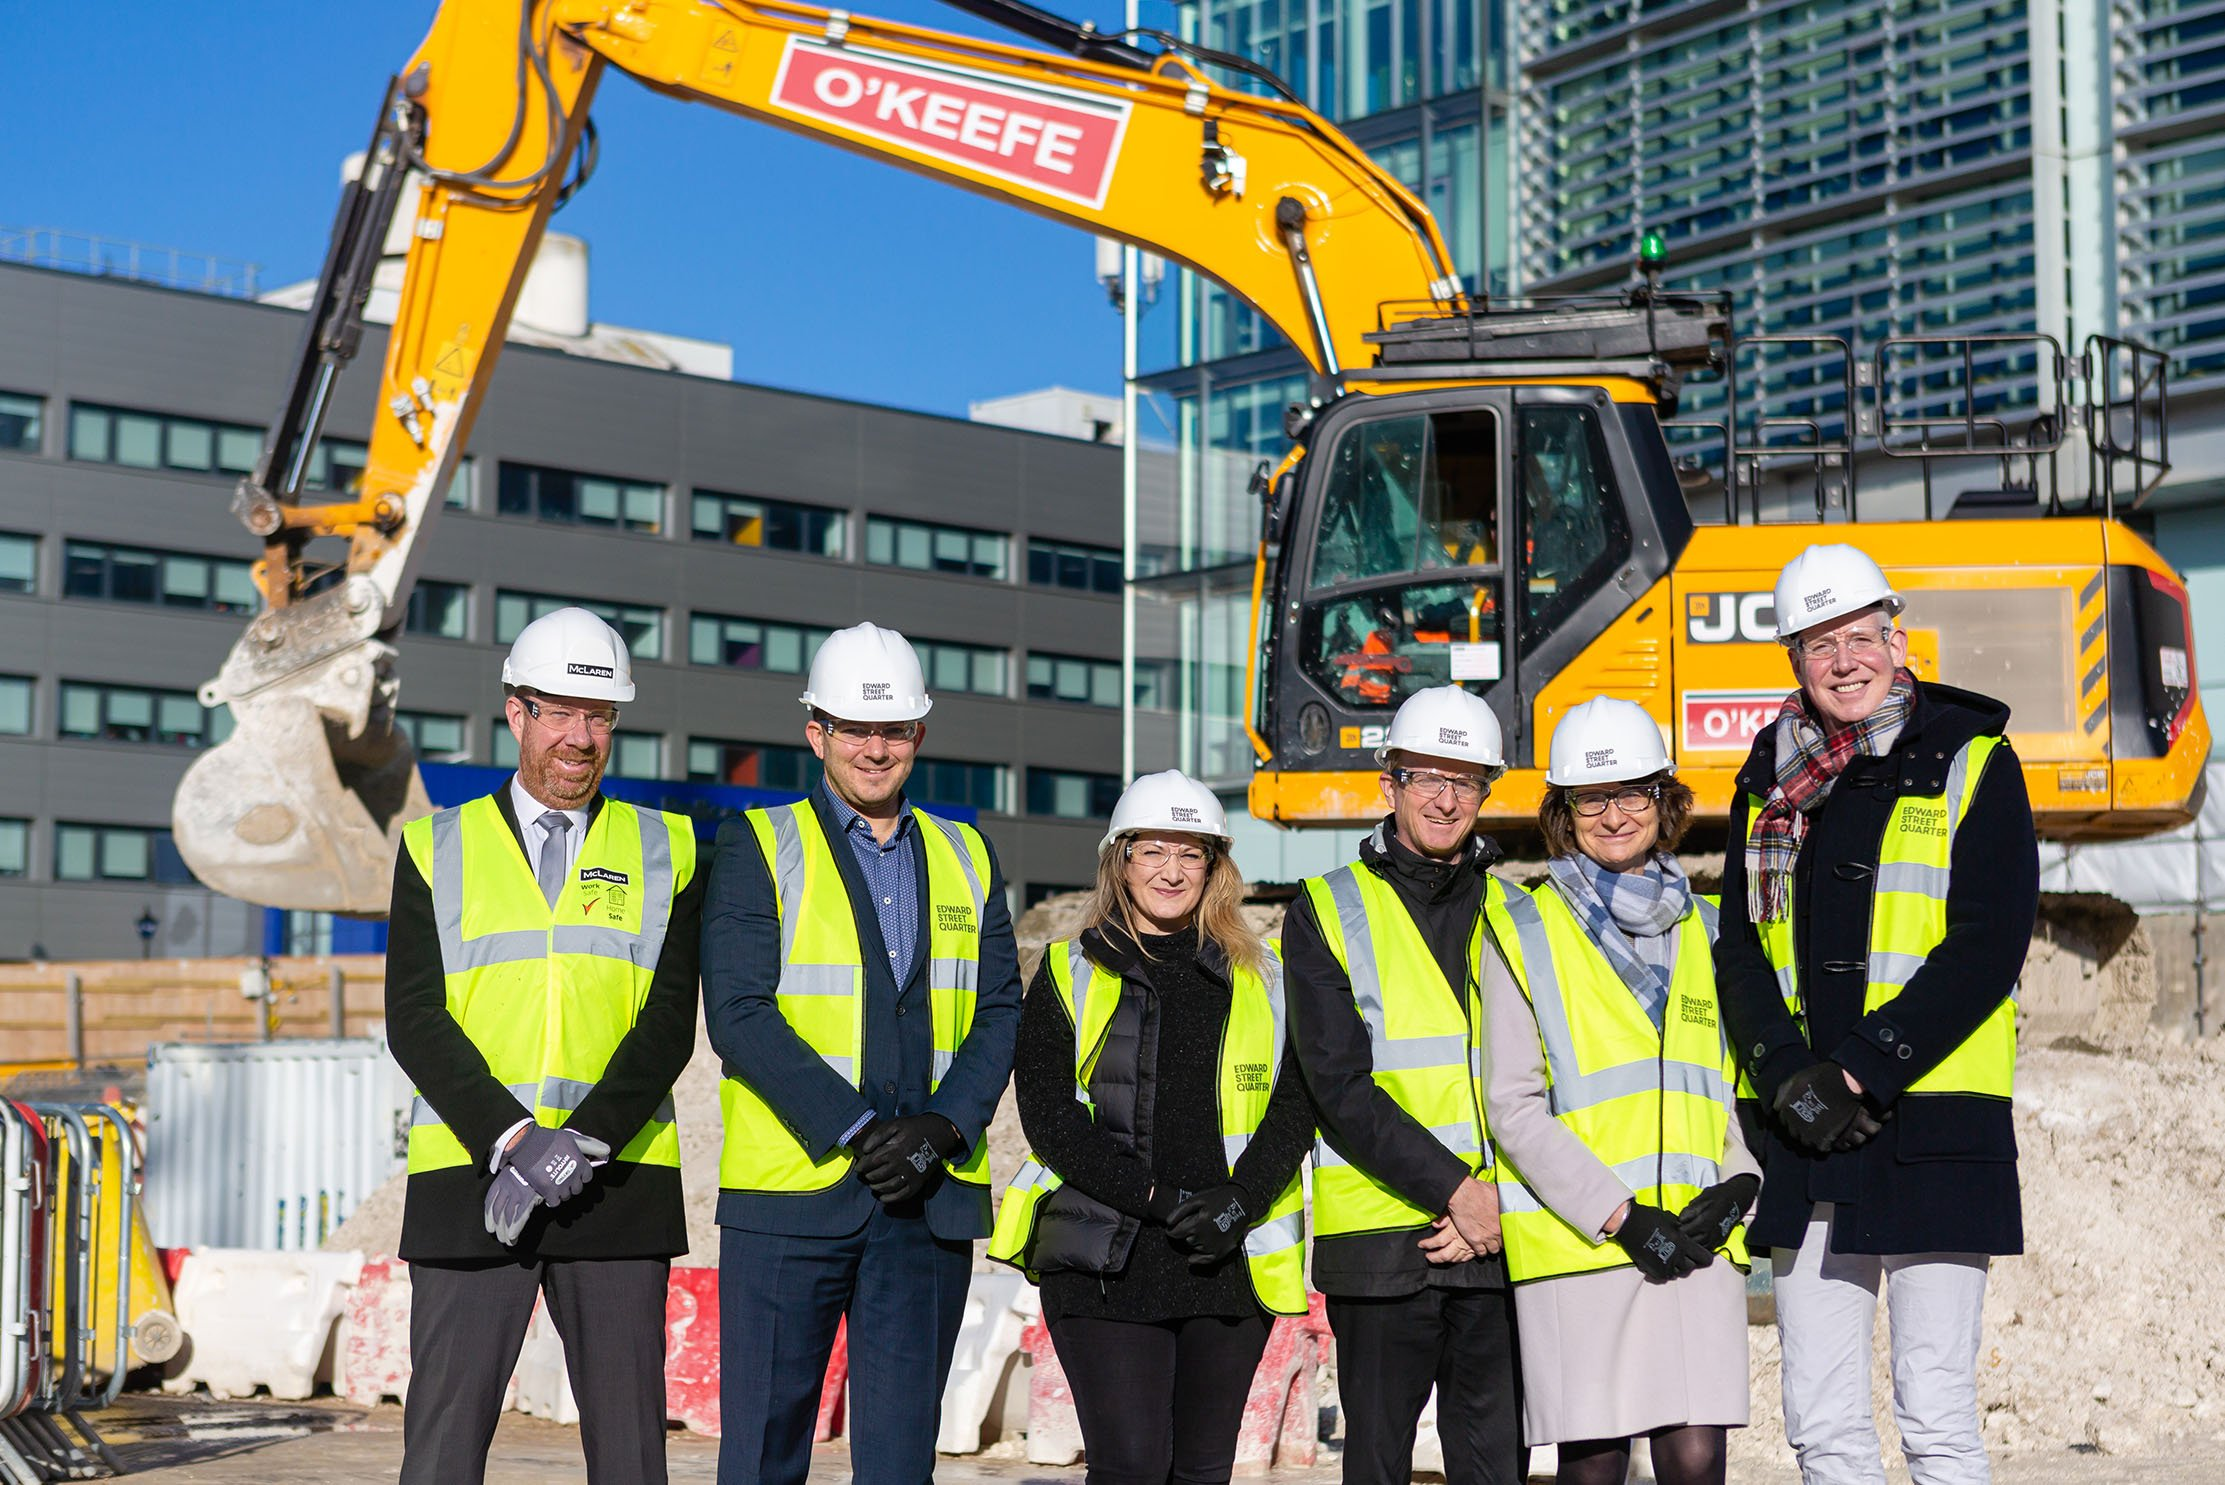 Work has begun at Edward Street Quarter, the £120m redevelopment of the ex-AMEX House site should be completed by Autumn 2021.